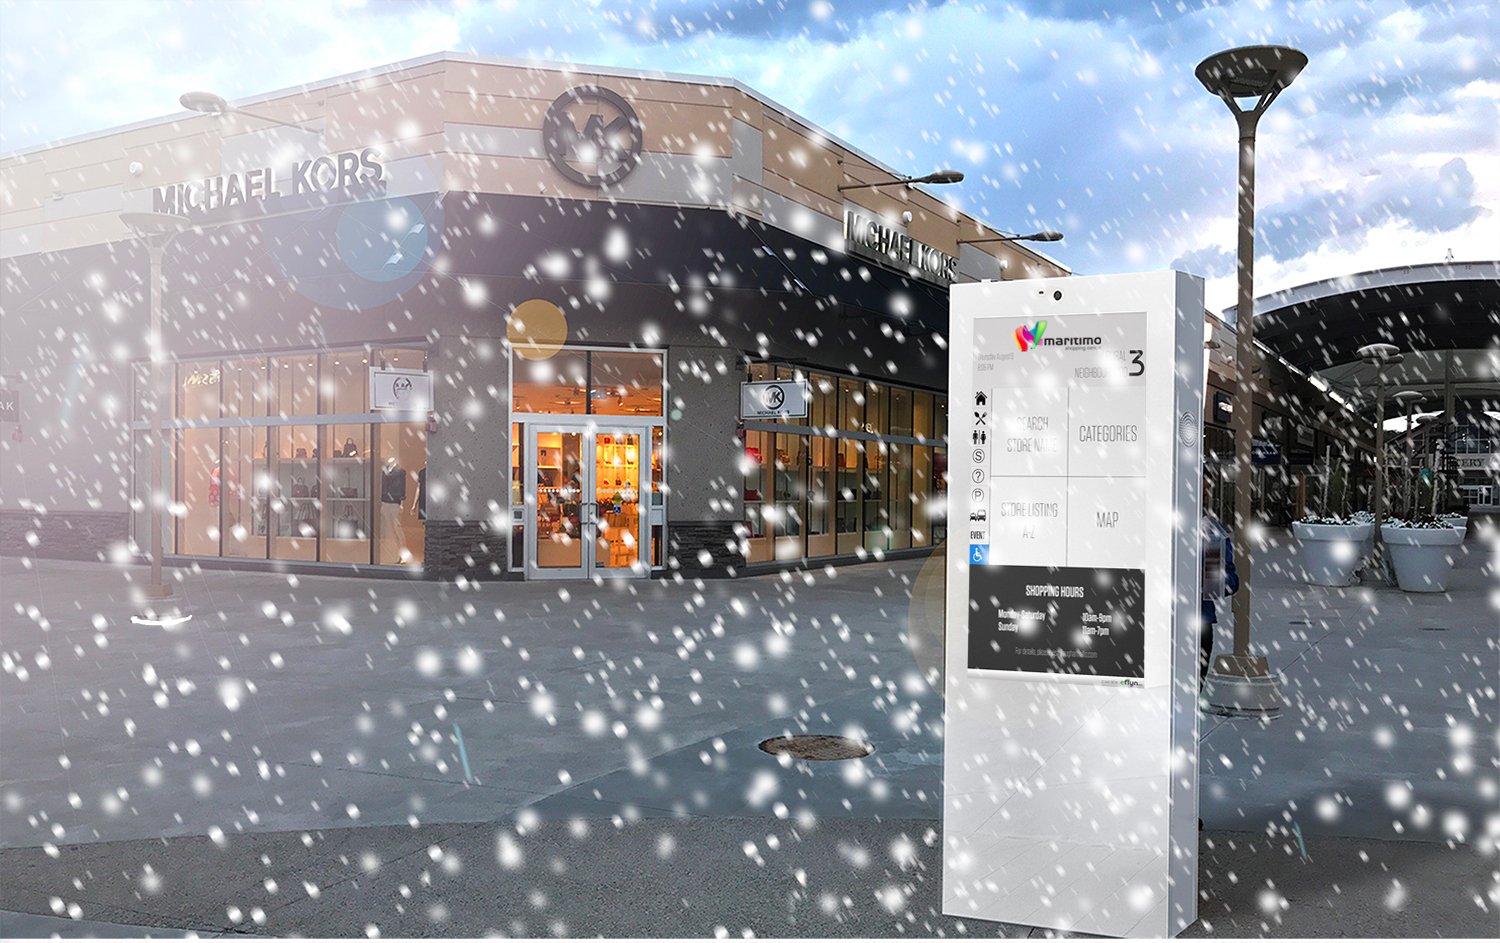 outdoor-touchscreen-in rain